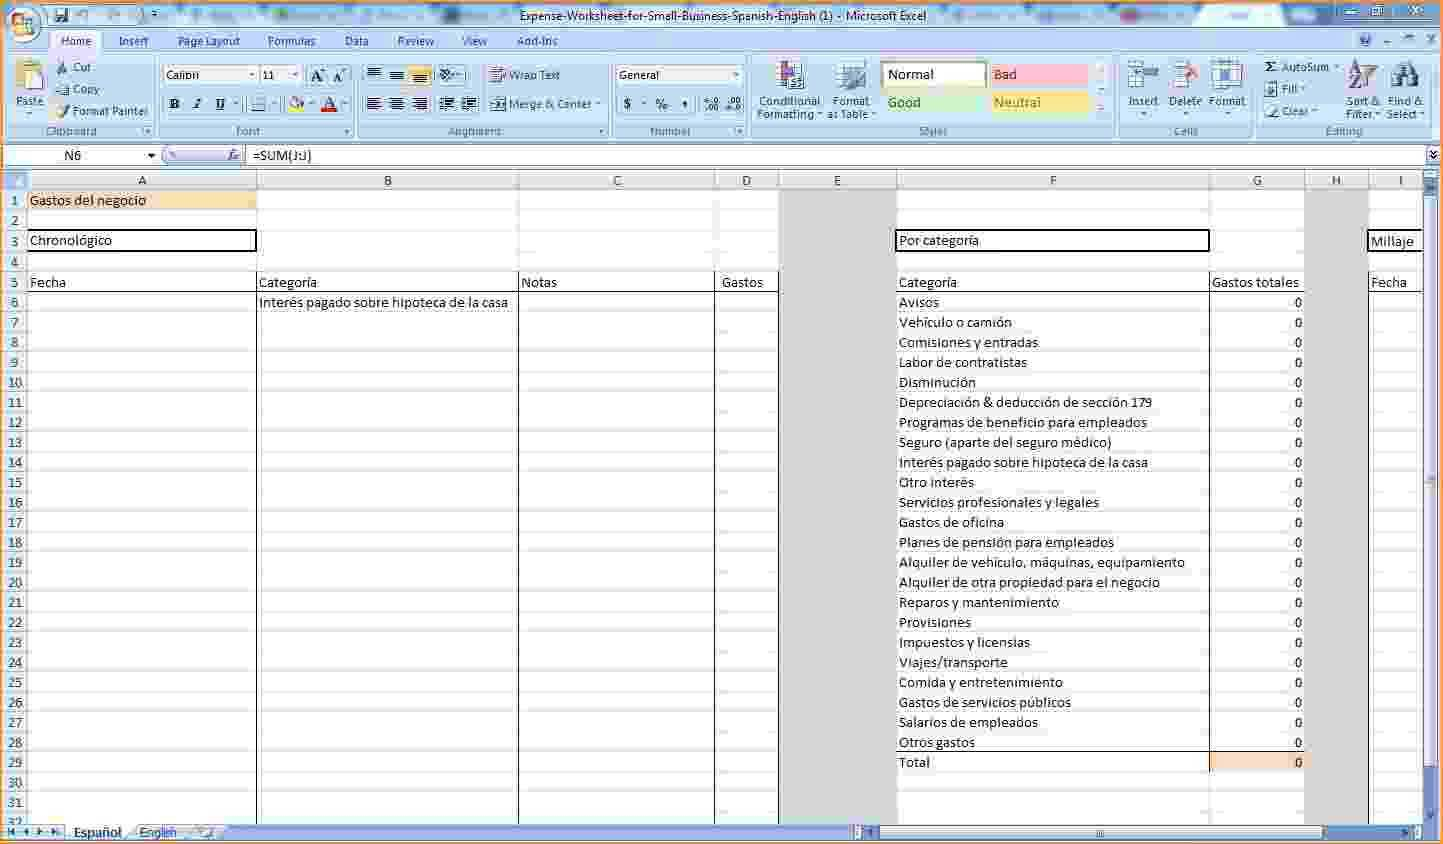 Business Spreadsheet Free Throughout Expense Tracking Spreadsheet For Small Business And Expense Tracking